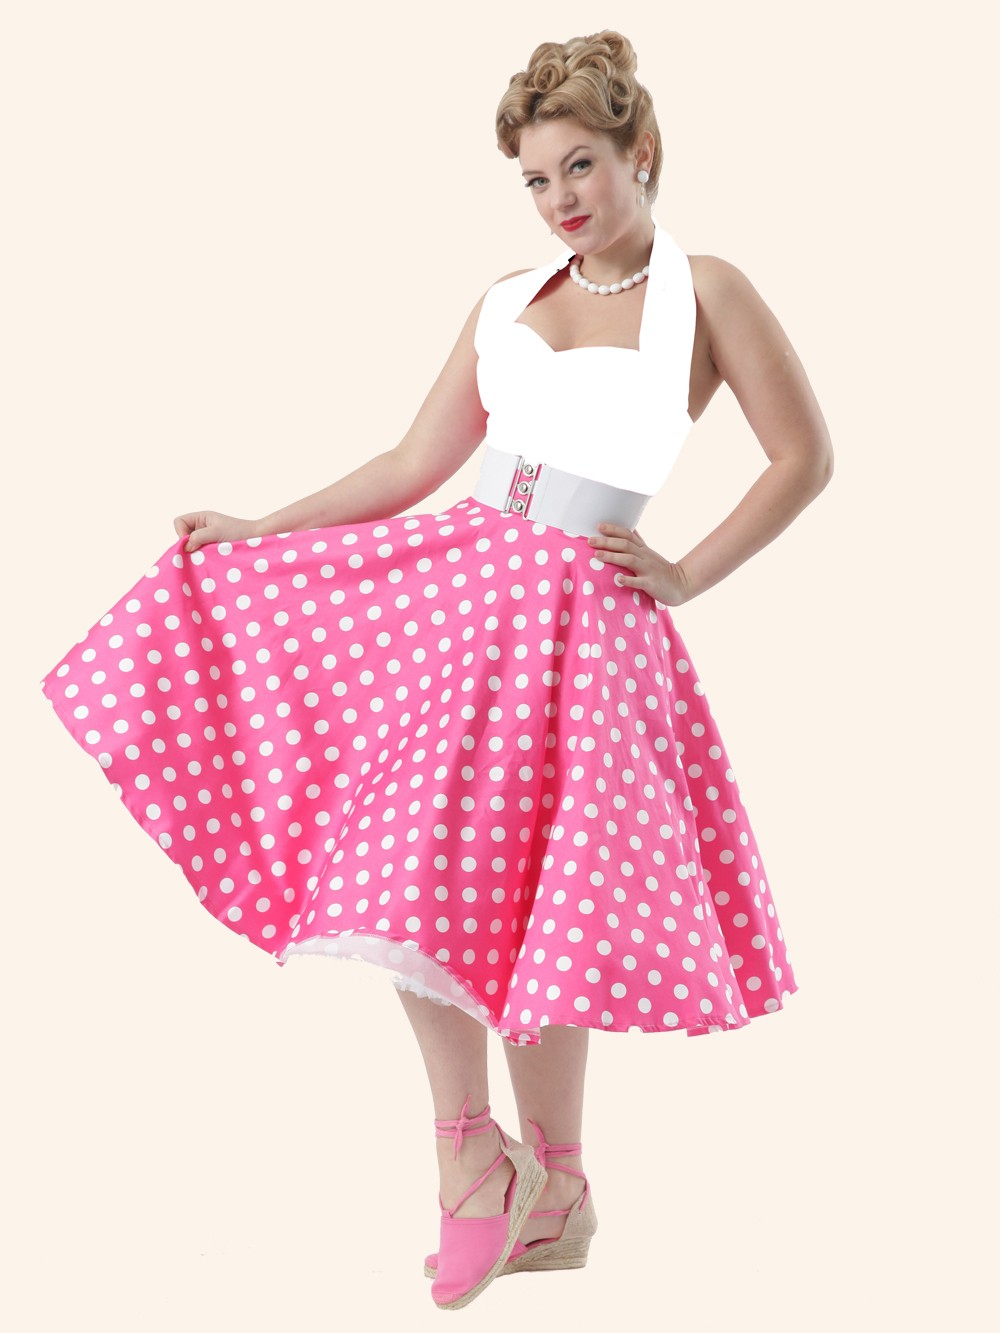 1950s-circle-skirt-cerise-white-polka-p1045-2936_zoom 25+ Women Engagement Outfit Ideas Coming in 2020